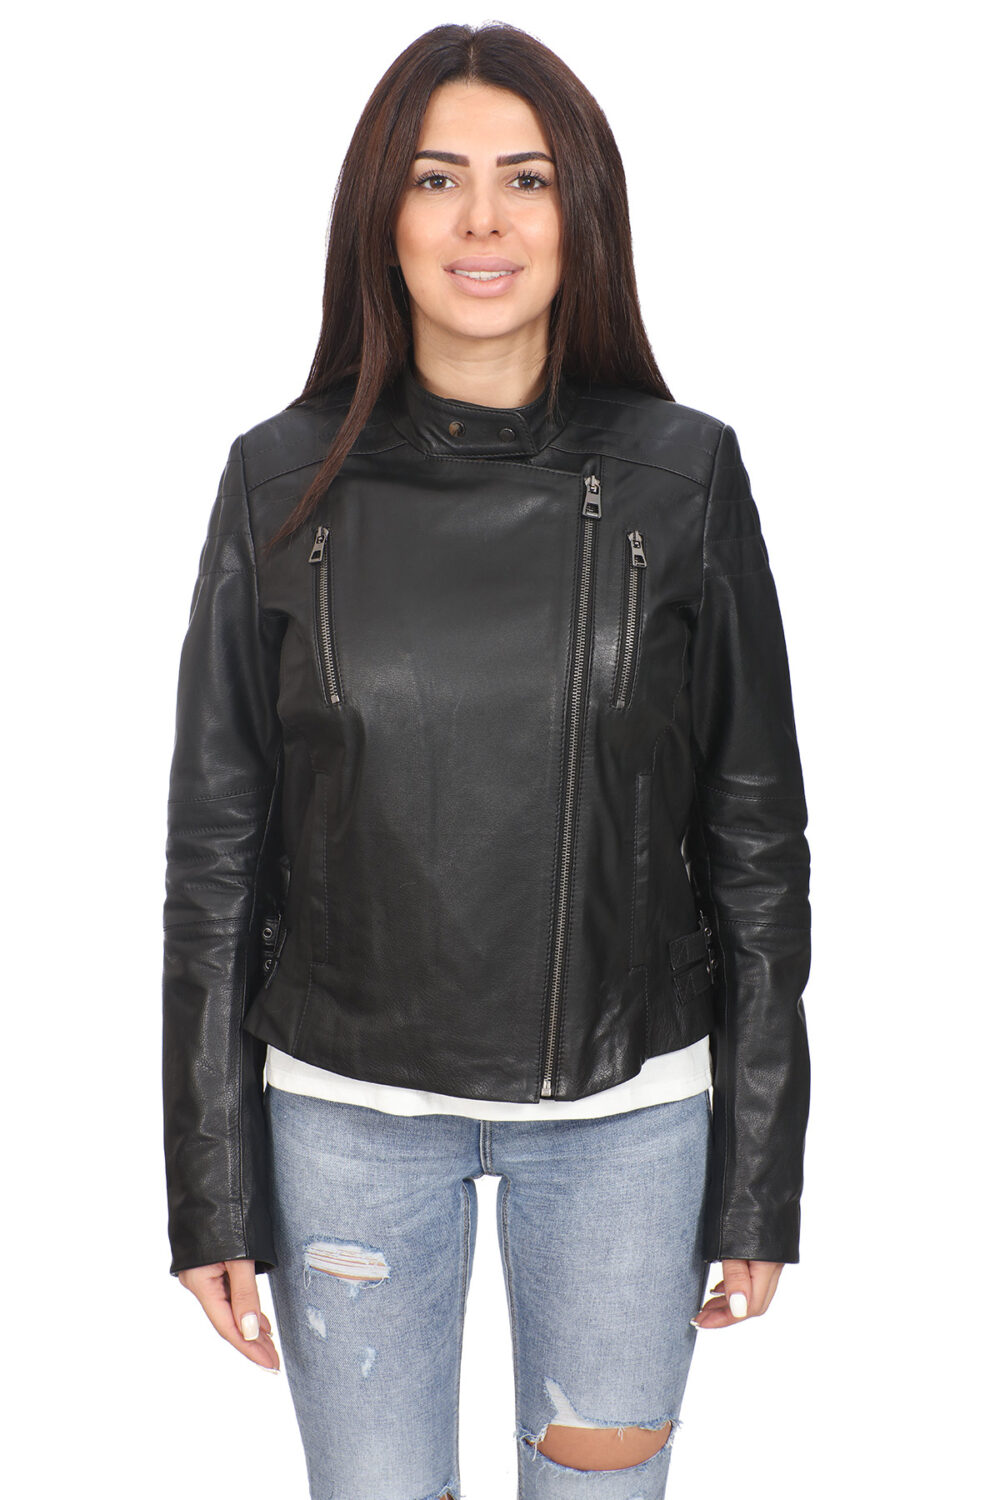 Where To Buy Leather Jackets Near Me